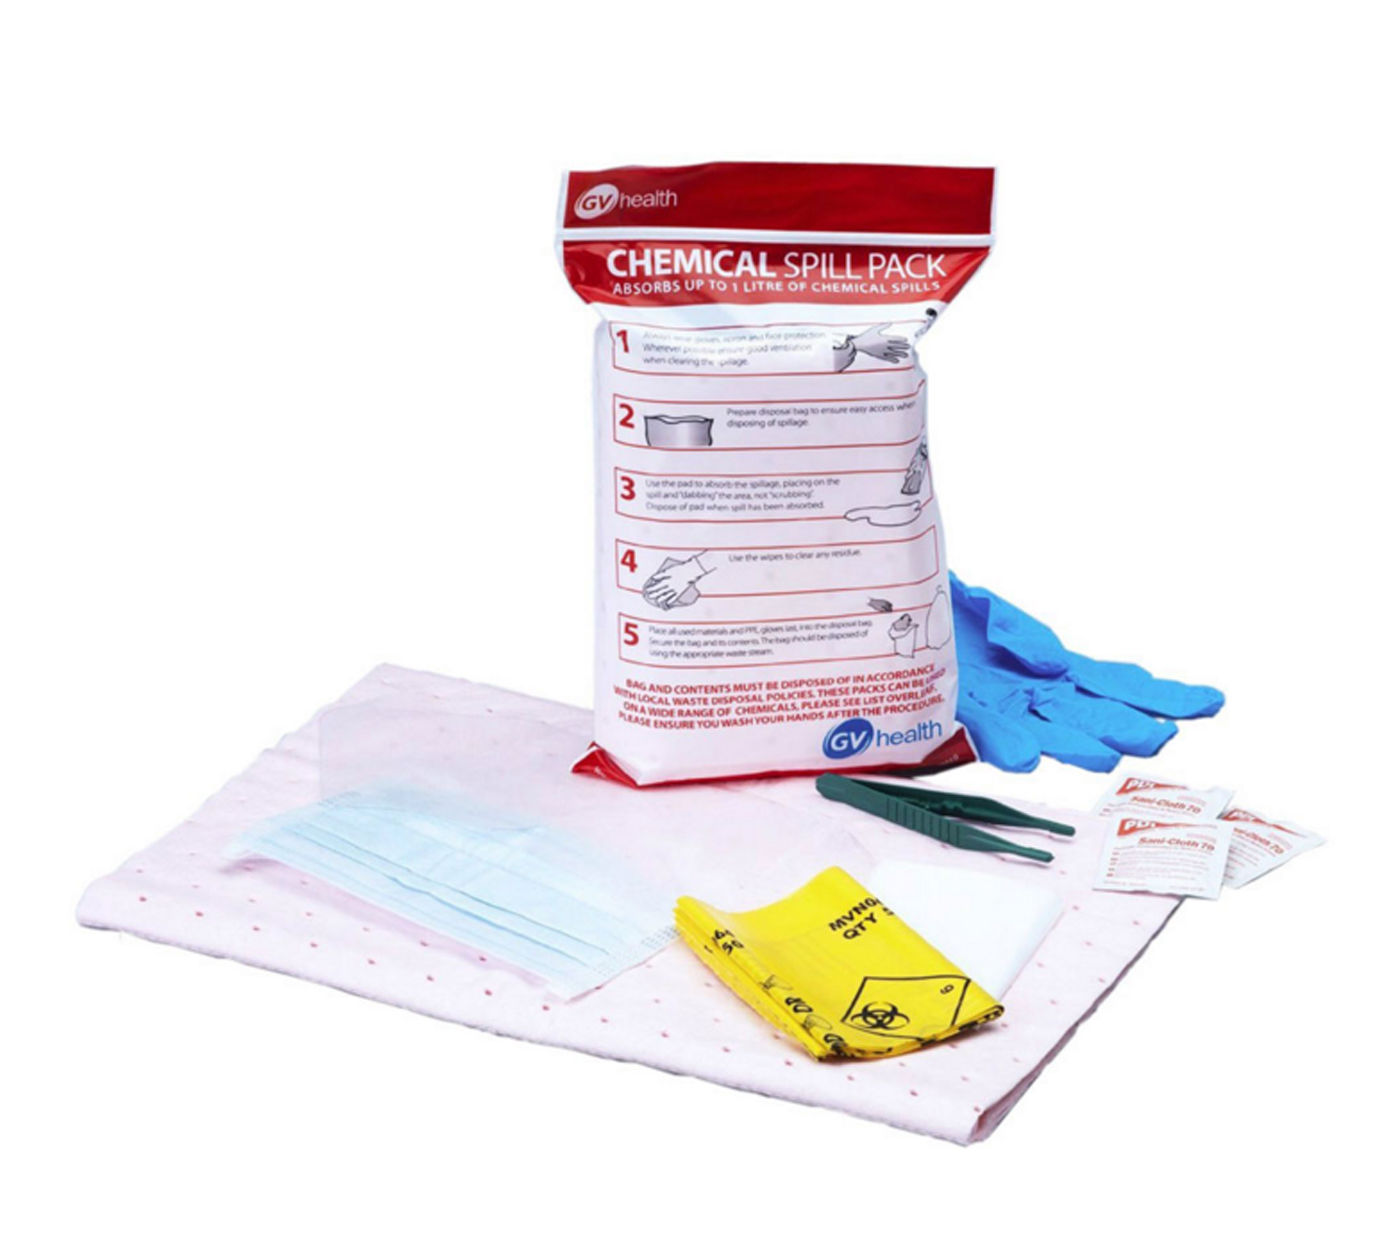 GV Health Chemical Spill Pack thumbnail image 1